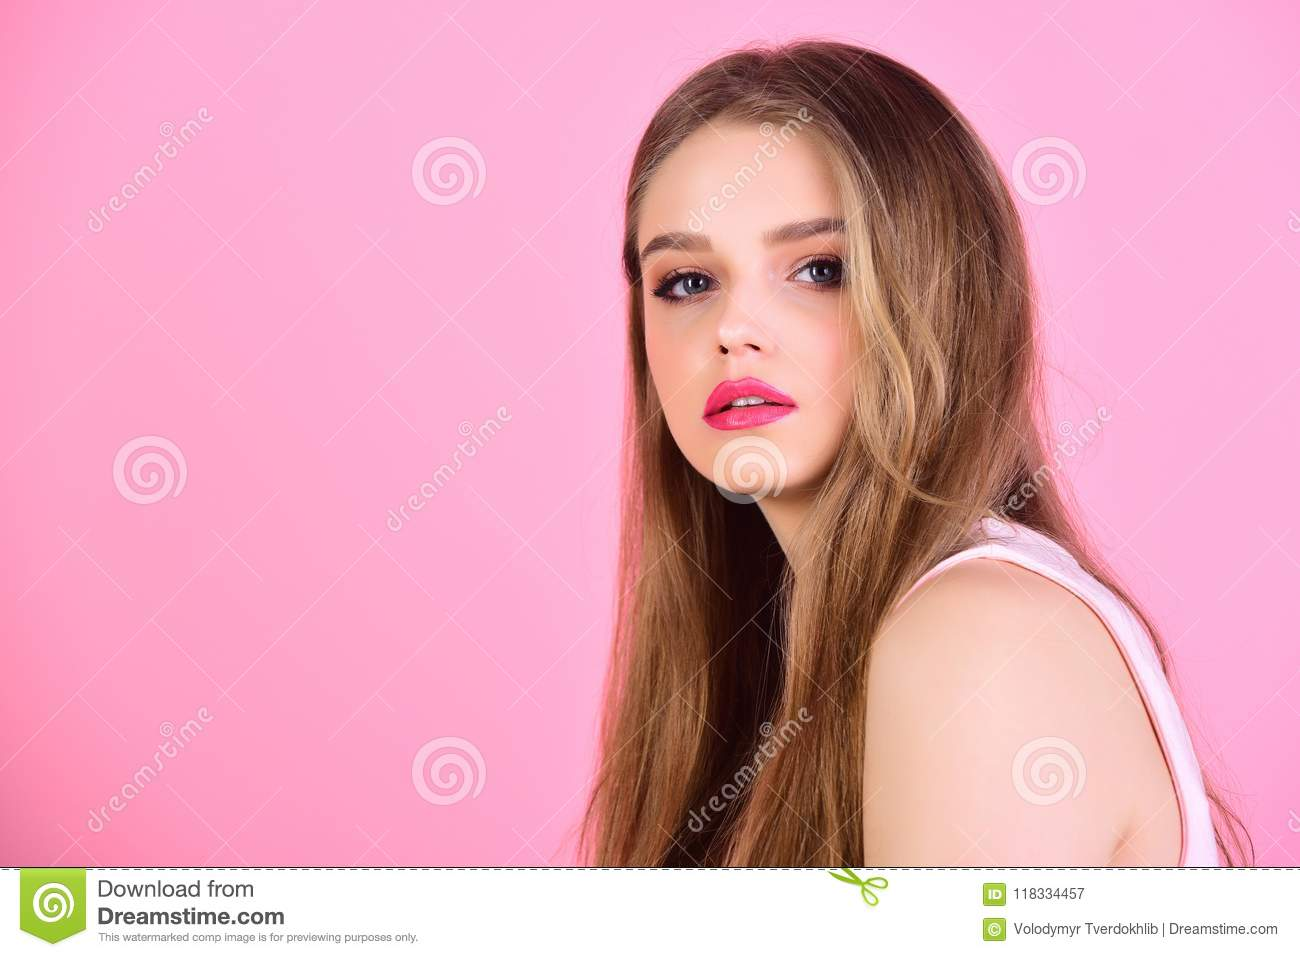 woman with long hair on pink background. Fashion look concept. girl with makeup and healthy hair. Beauty and